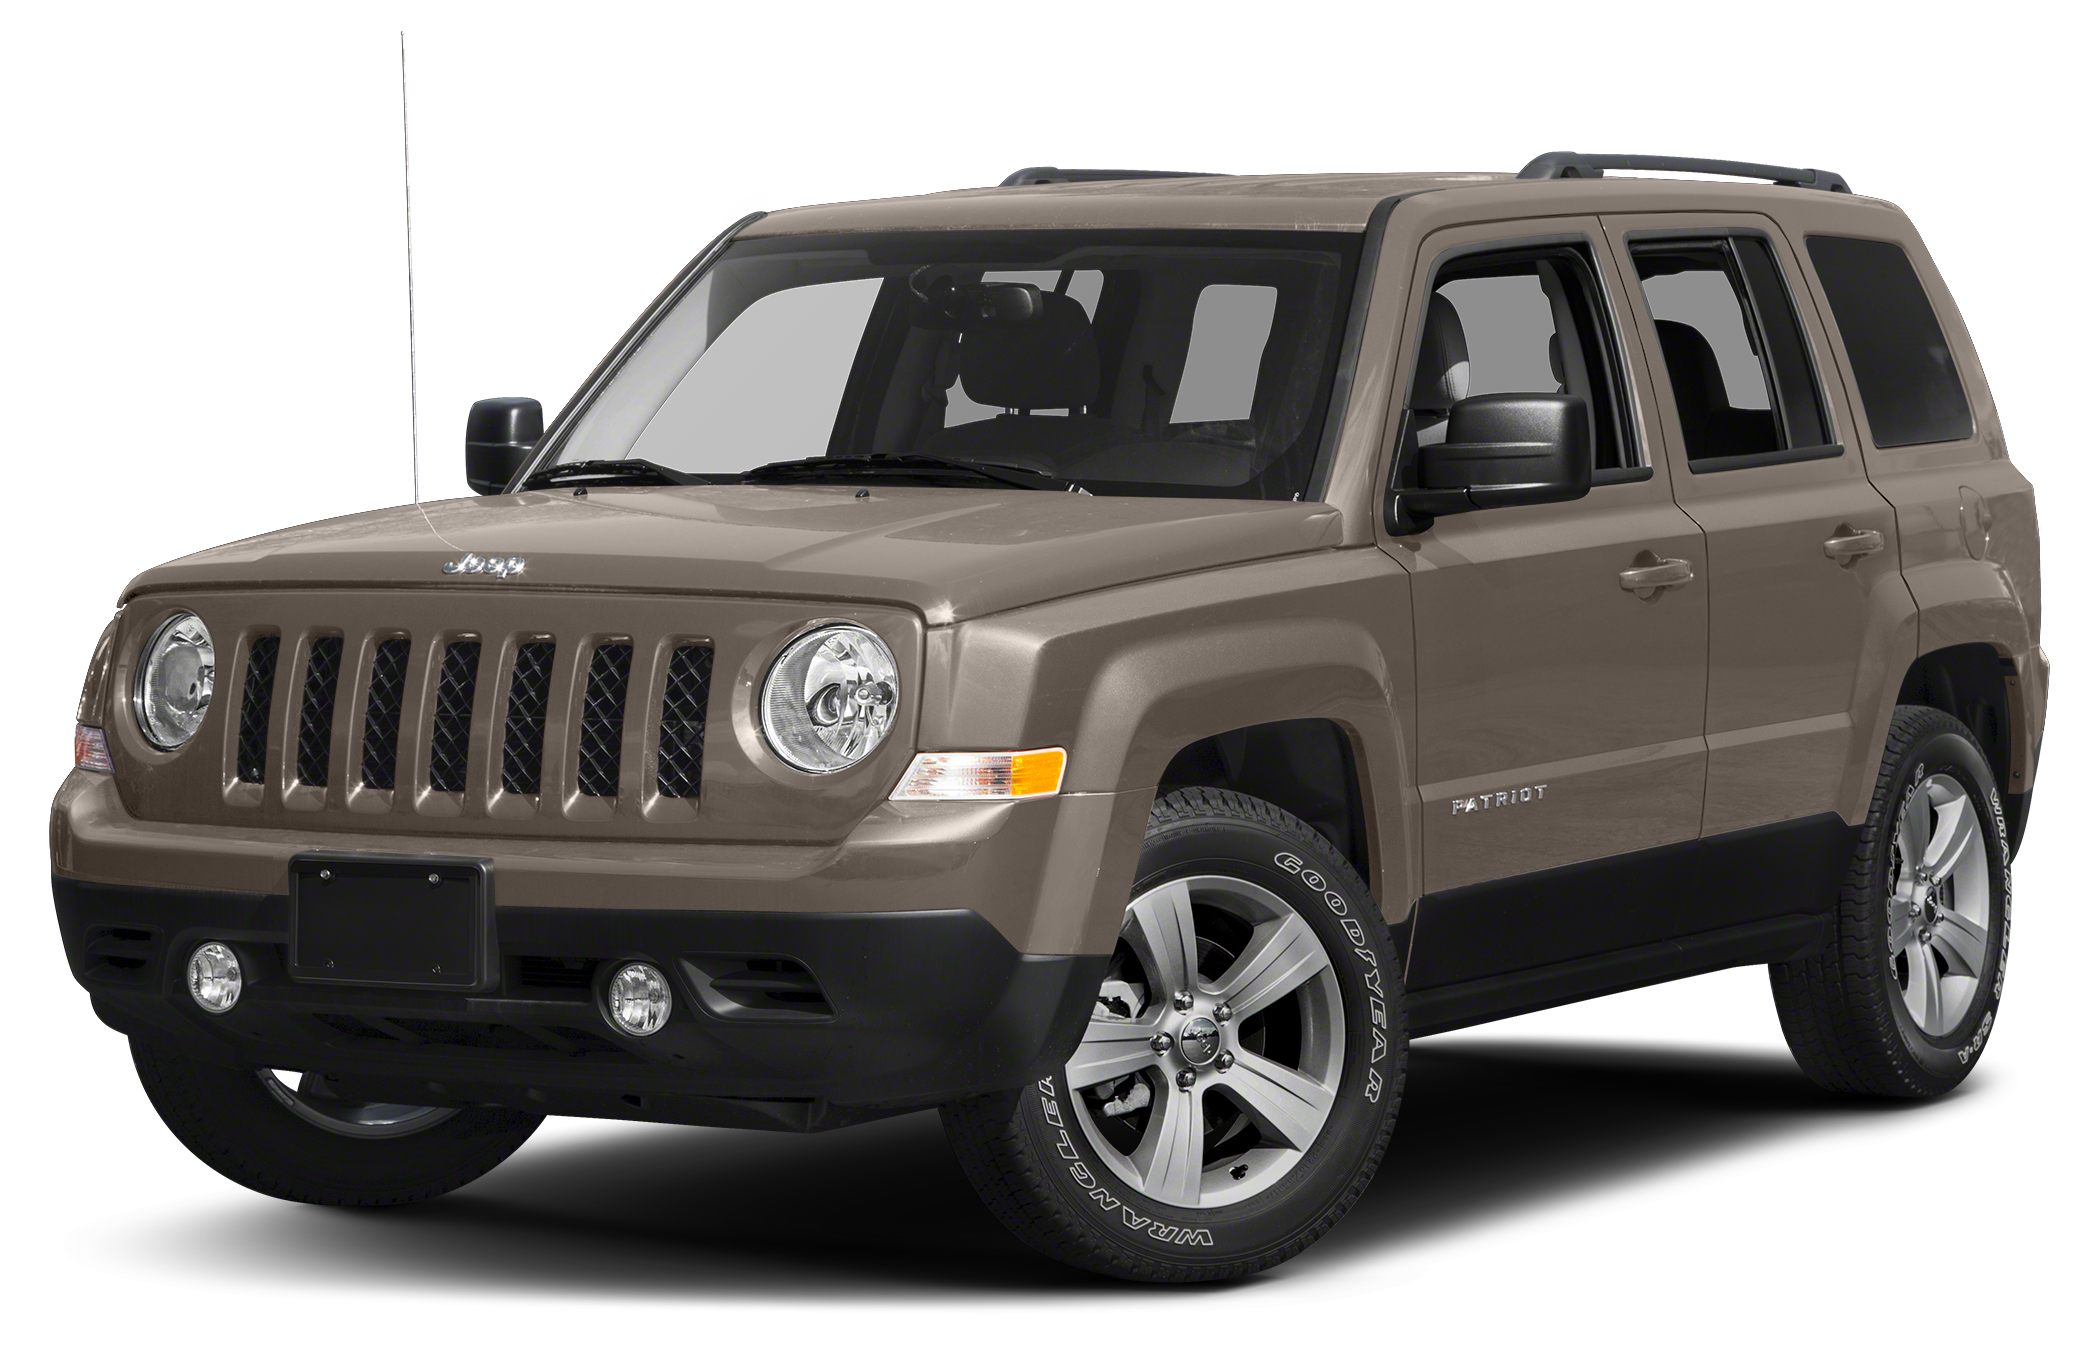 2017 Jeep Patriot Sport Recent Arrival Clean CARFAX Tan 2017 Jeep Patriot Sport 4WD 24L I4 DOHC